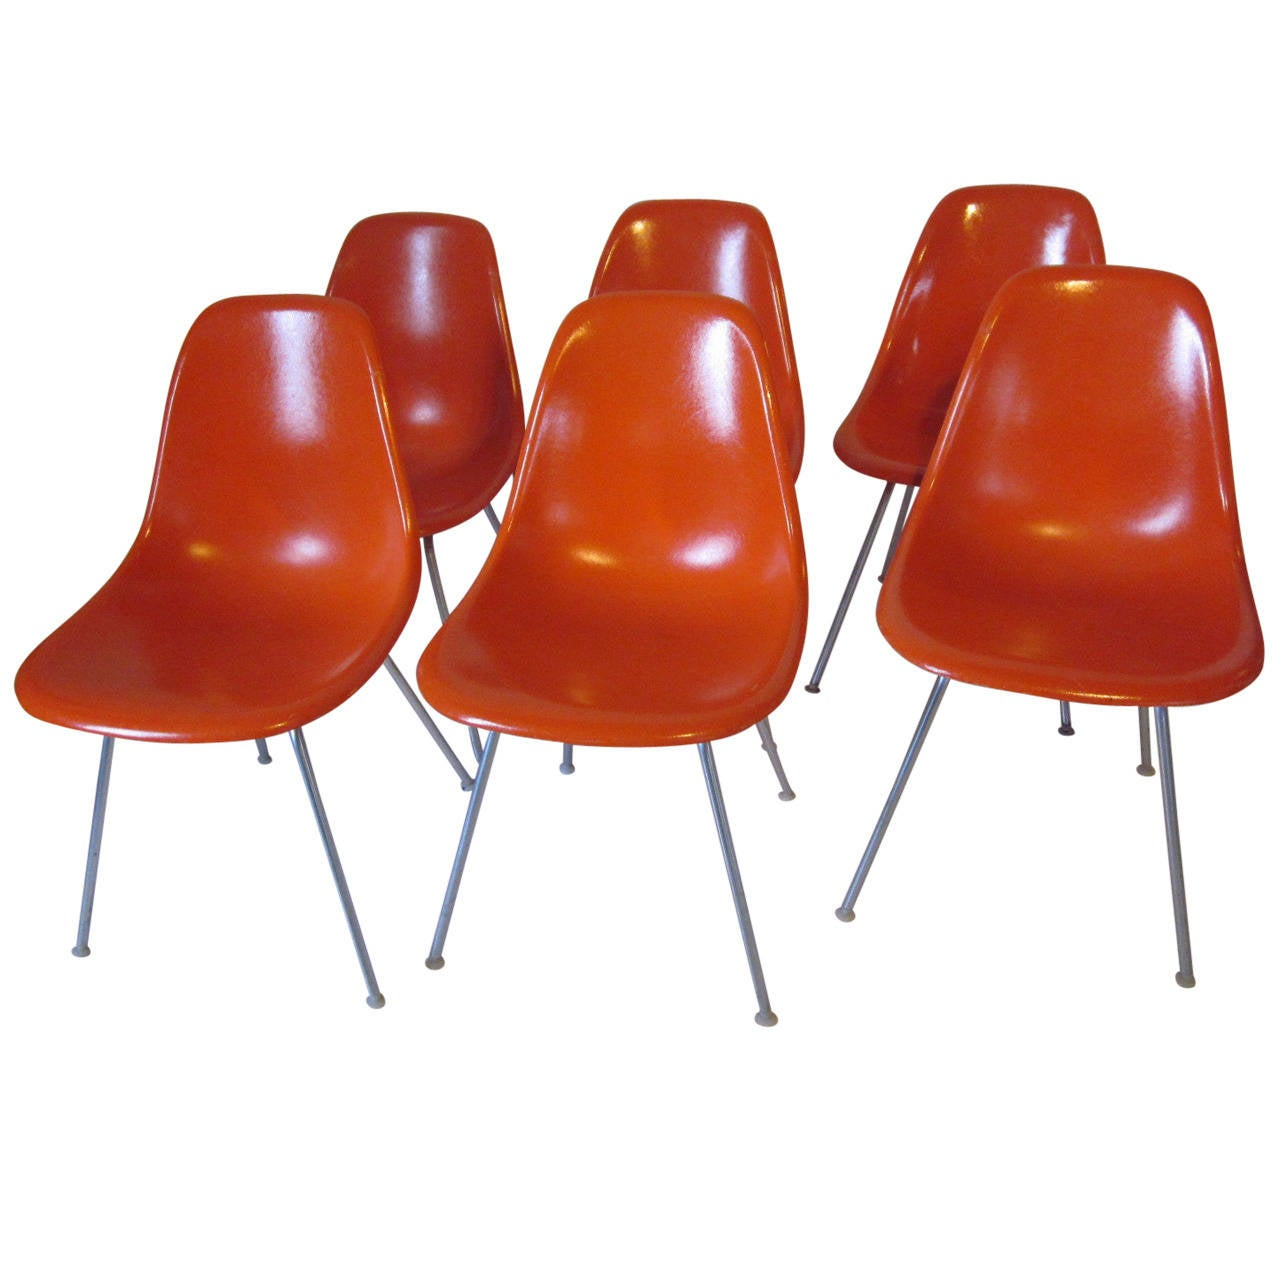 eames herman miller side chairs at 1stdibs. Black Bedroom Furniture Sets. Home Design Ideas